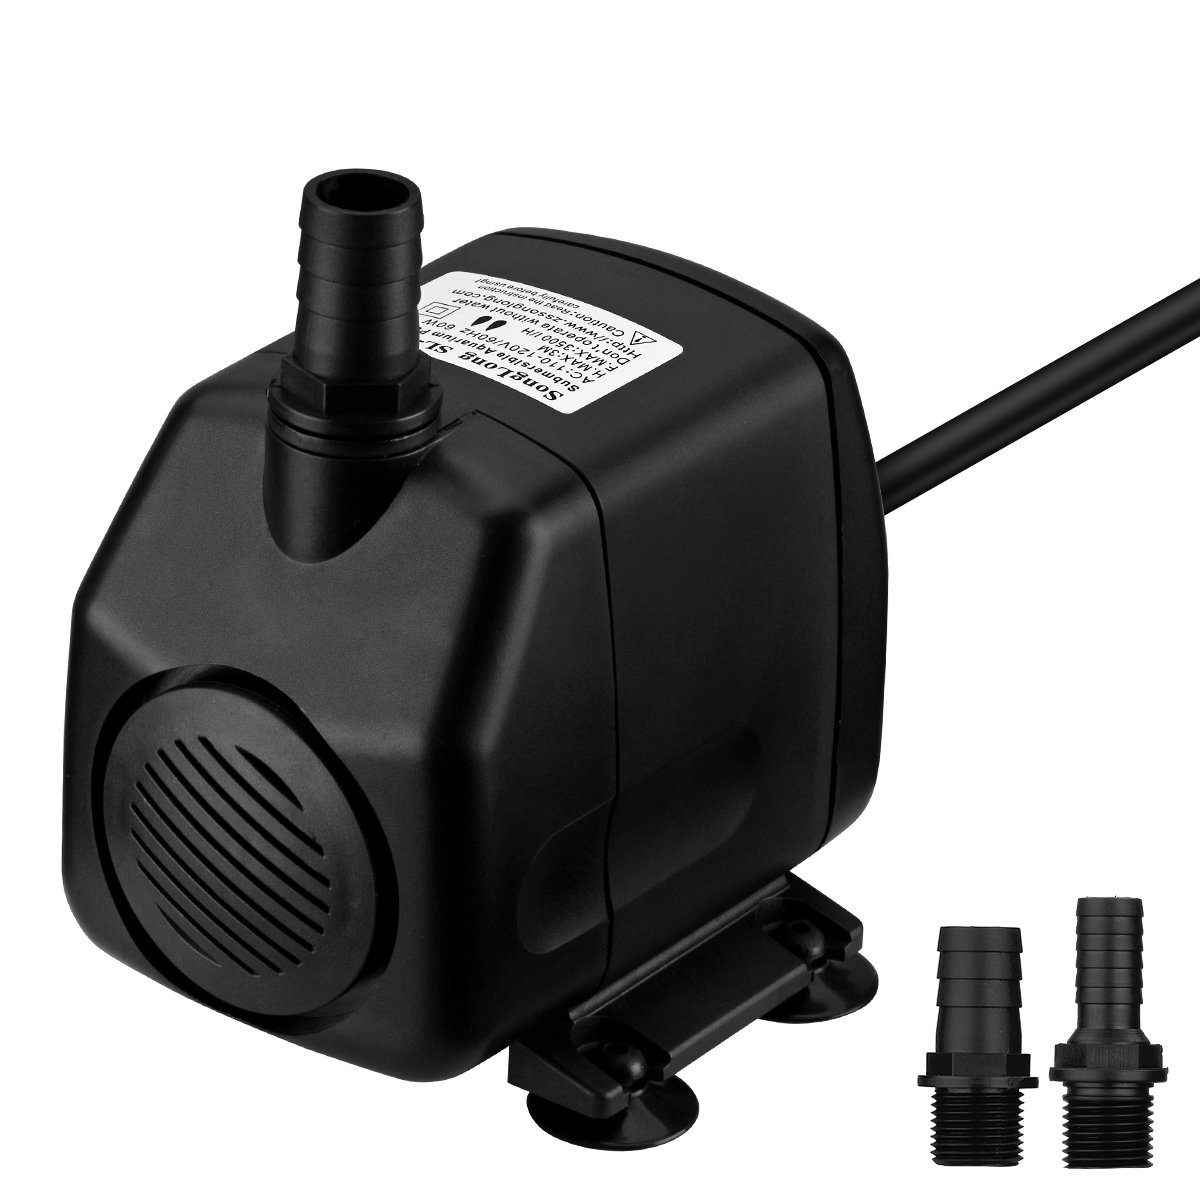 VicTsing 920GPH Fountain Water Pump 60W Submersible Pump For Aquarium, Fish Tank, Pond, Hydroponics with 5.9ft (1.8M) Power Cord